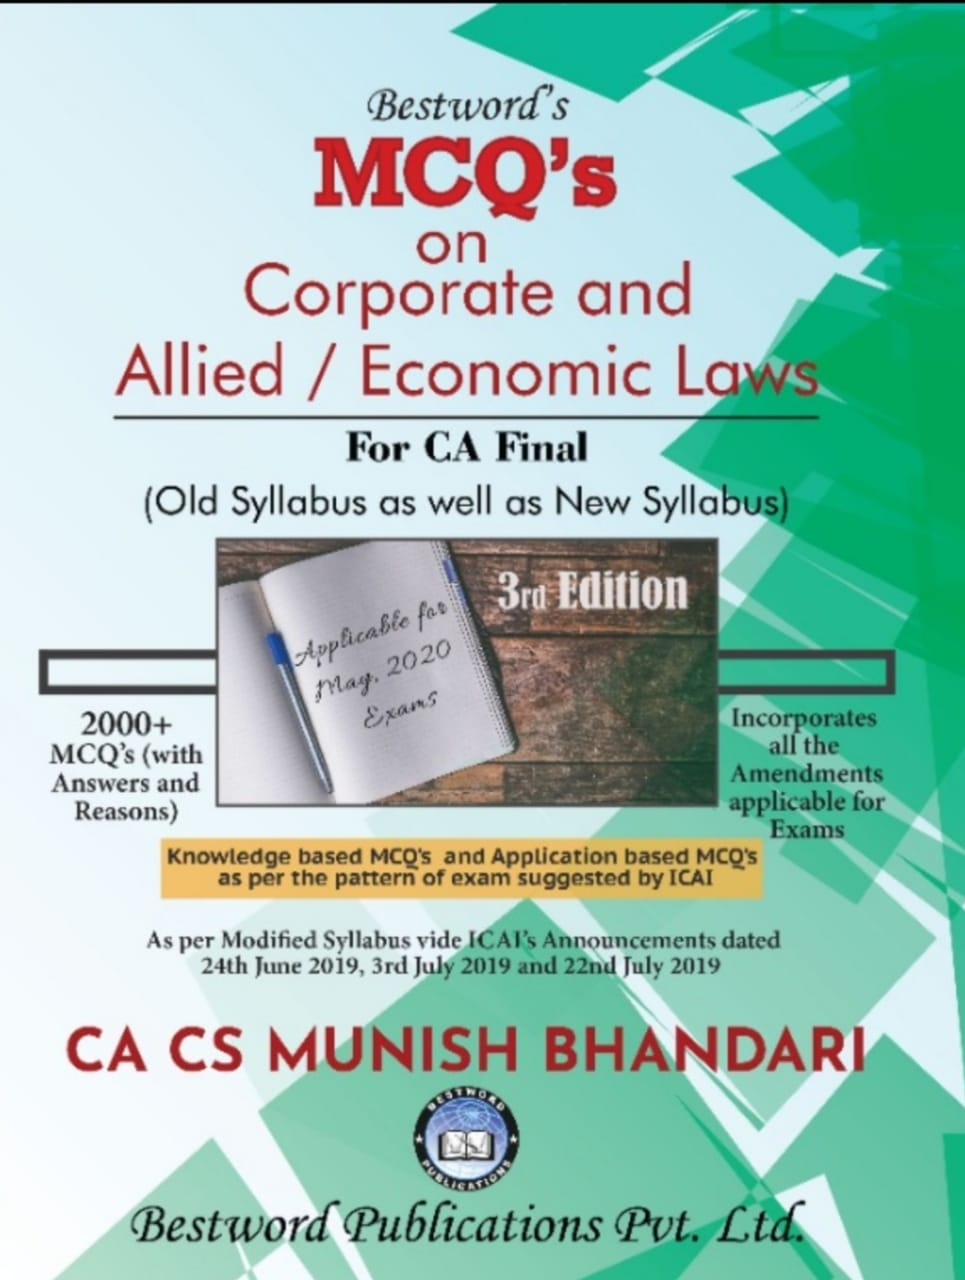 Bestword CA Final MCQs on Corporate and Allied Laws and Economic Laws Old and New Syllabus By Munish Bhandari Applicable for May 2020 Exam